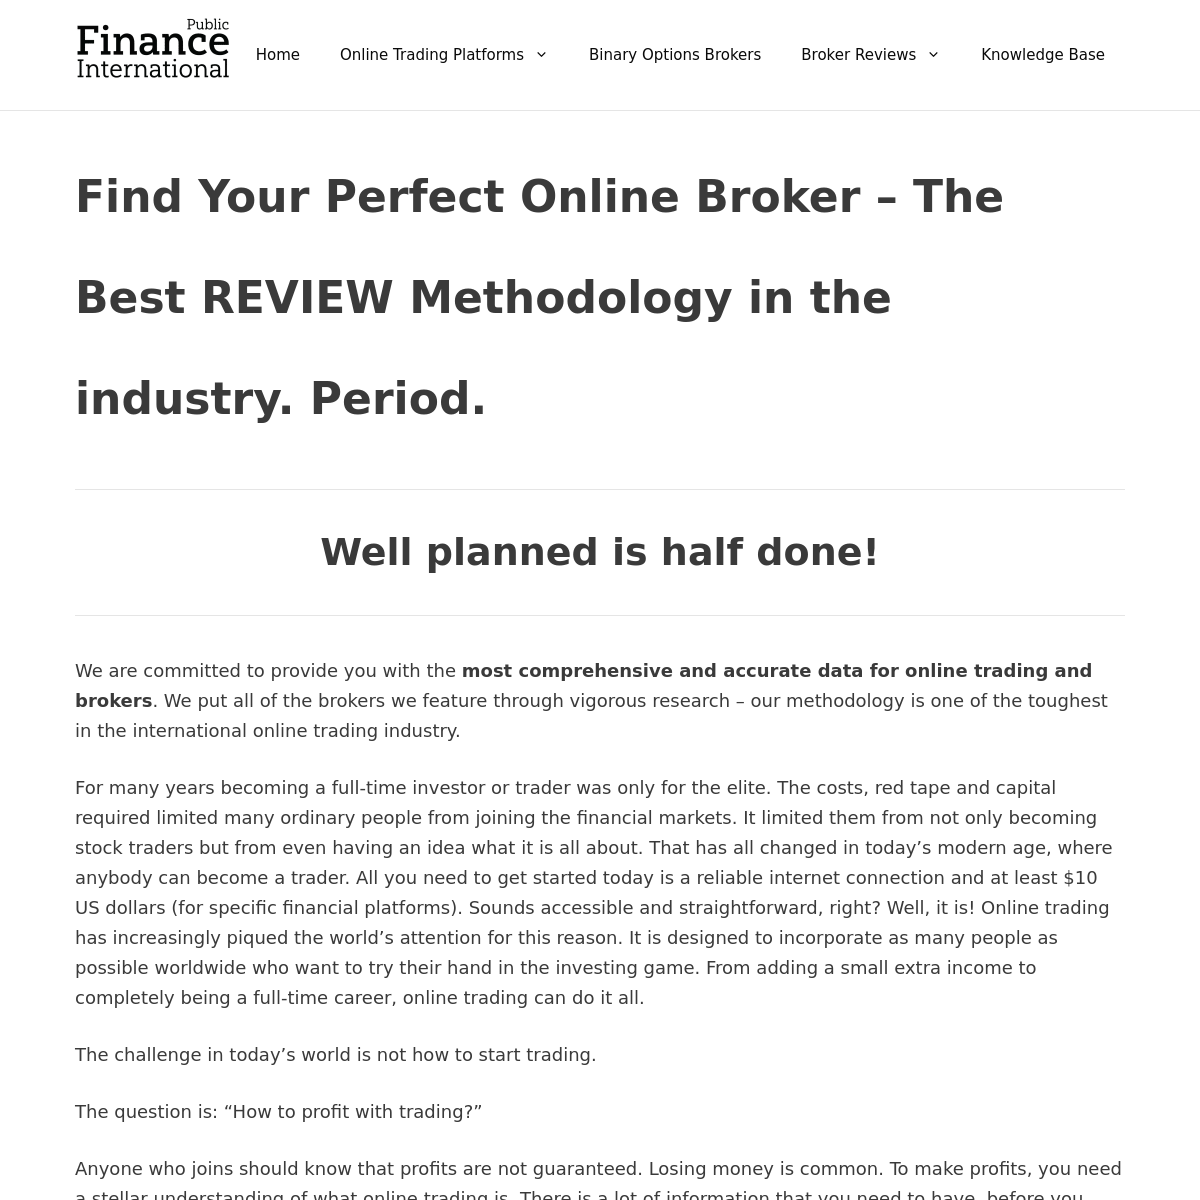 Public Finance International - Online Trading - Broker Reviews & Ratings